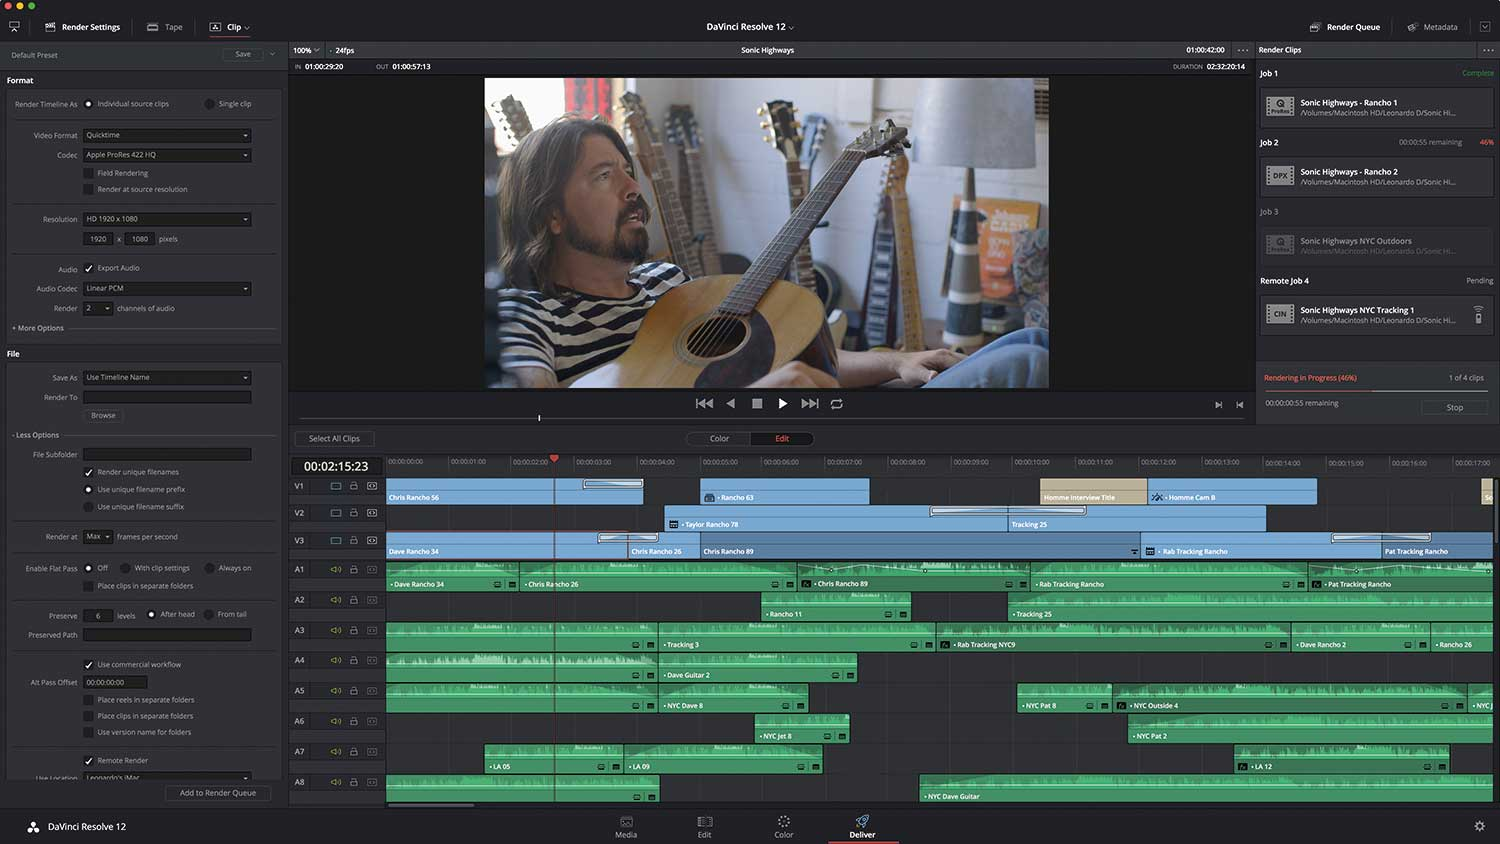 Resolve 12's new DELIVER page.